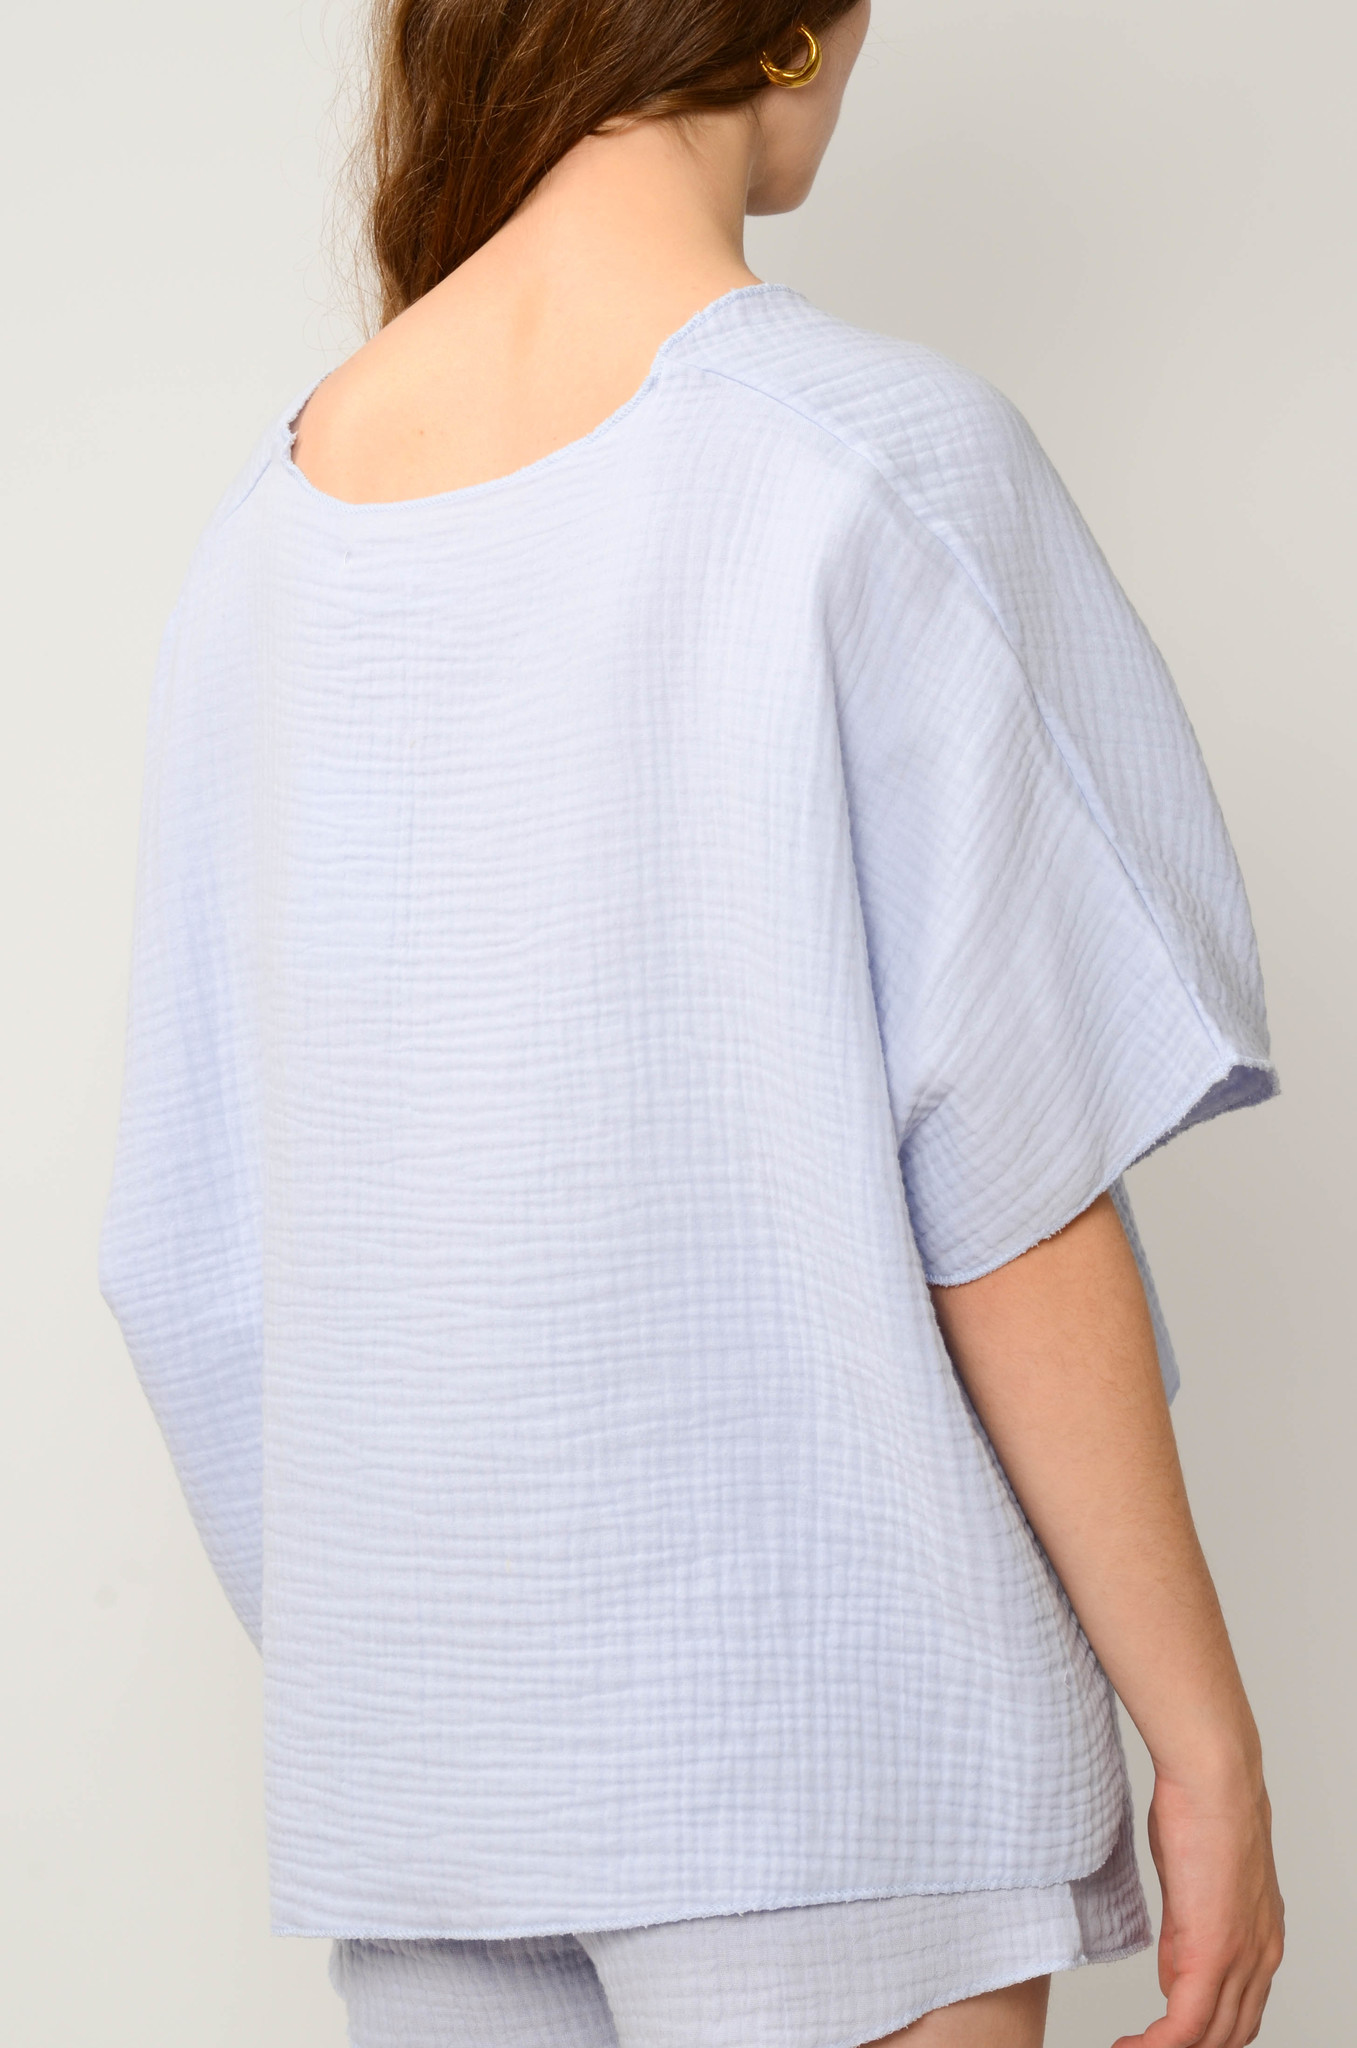 DATAI TOP IN ICE BLUE-4